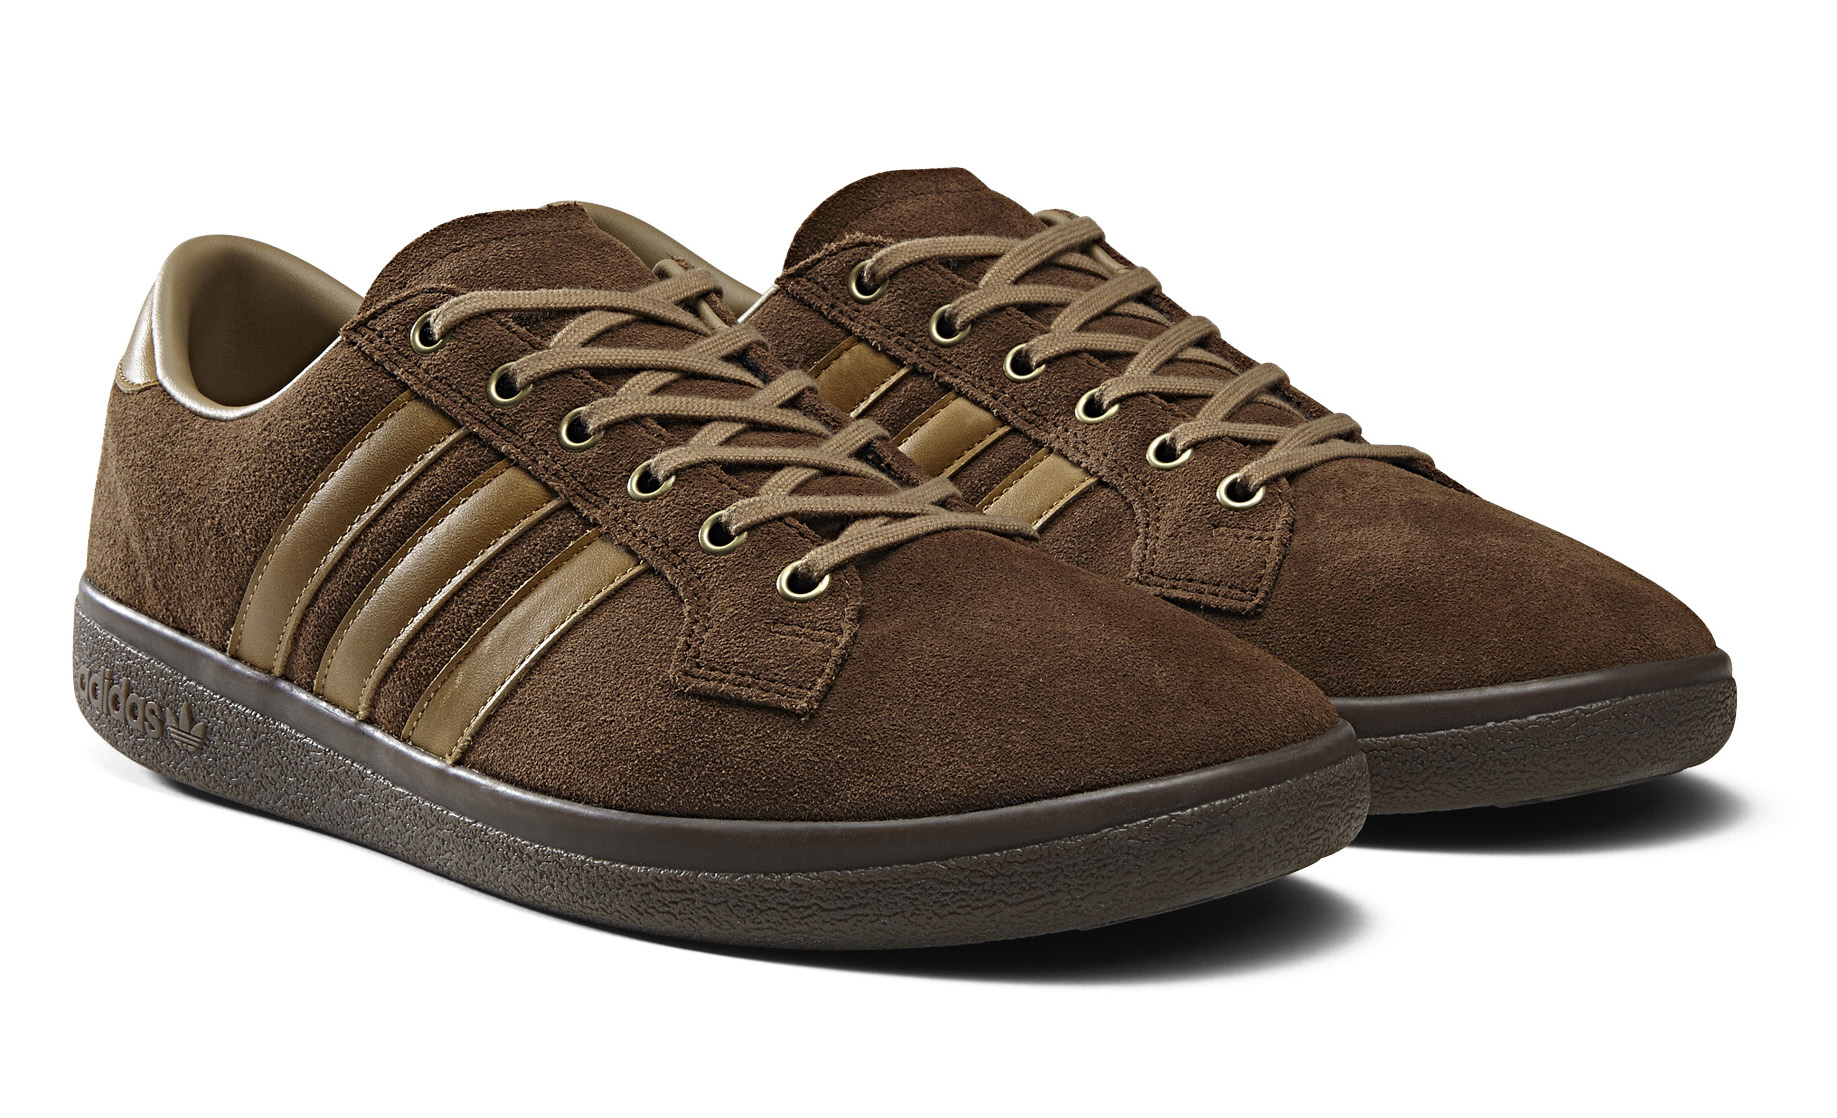 adidas-spezial-collection-fall-winter-2016-11